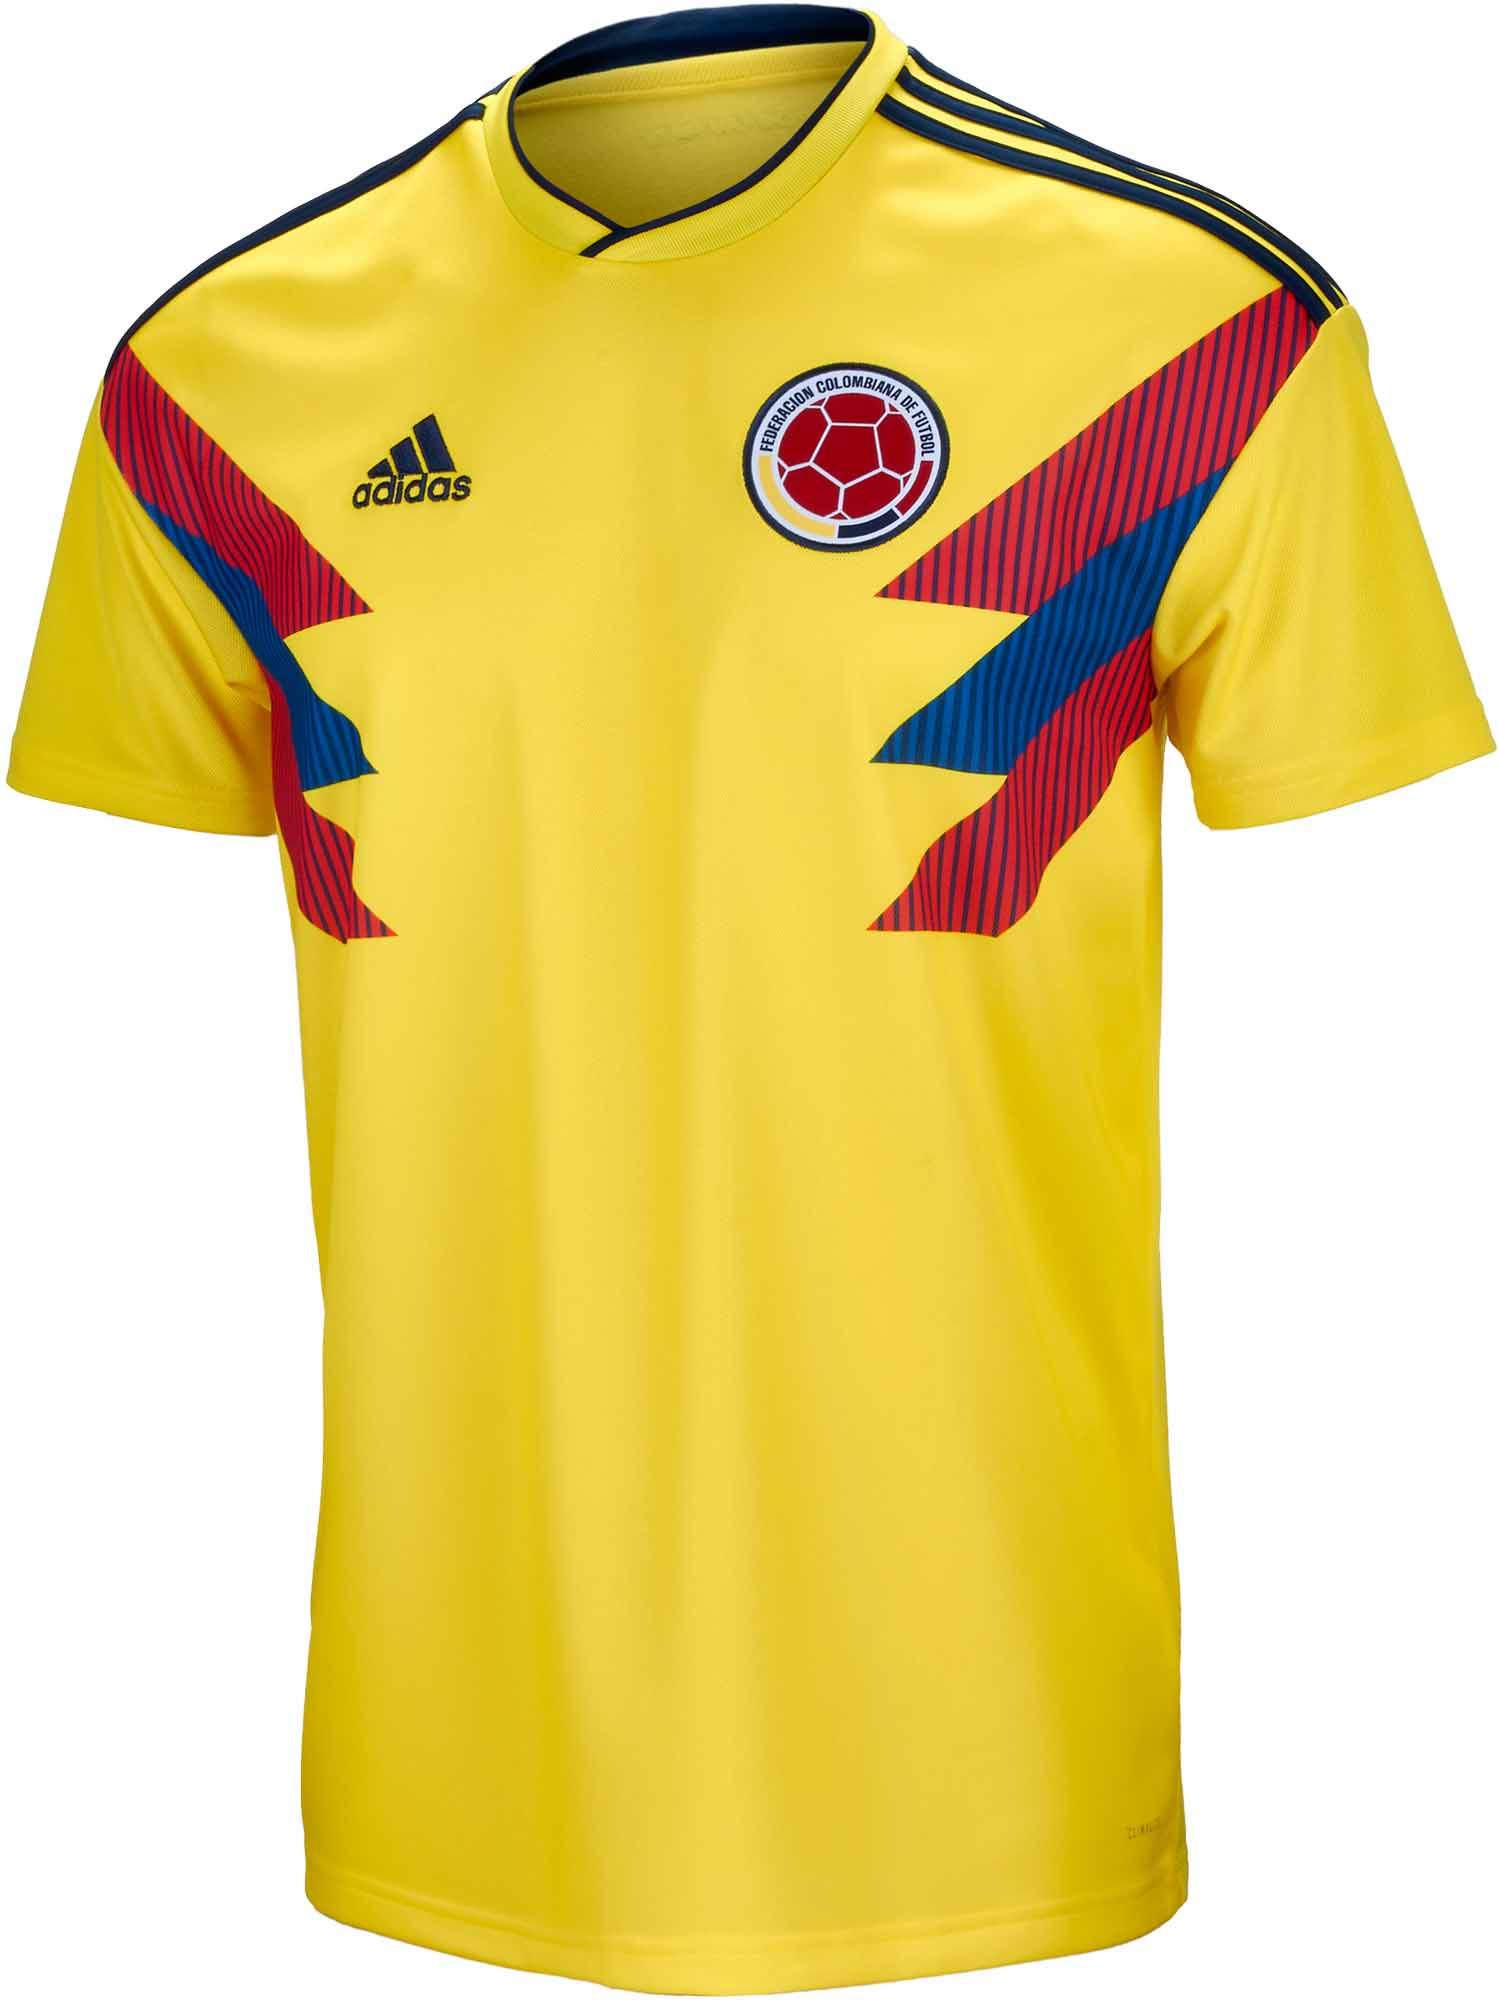 2018/19 adidas Colombia Home Jersey - Soccer Master - photo#28